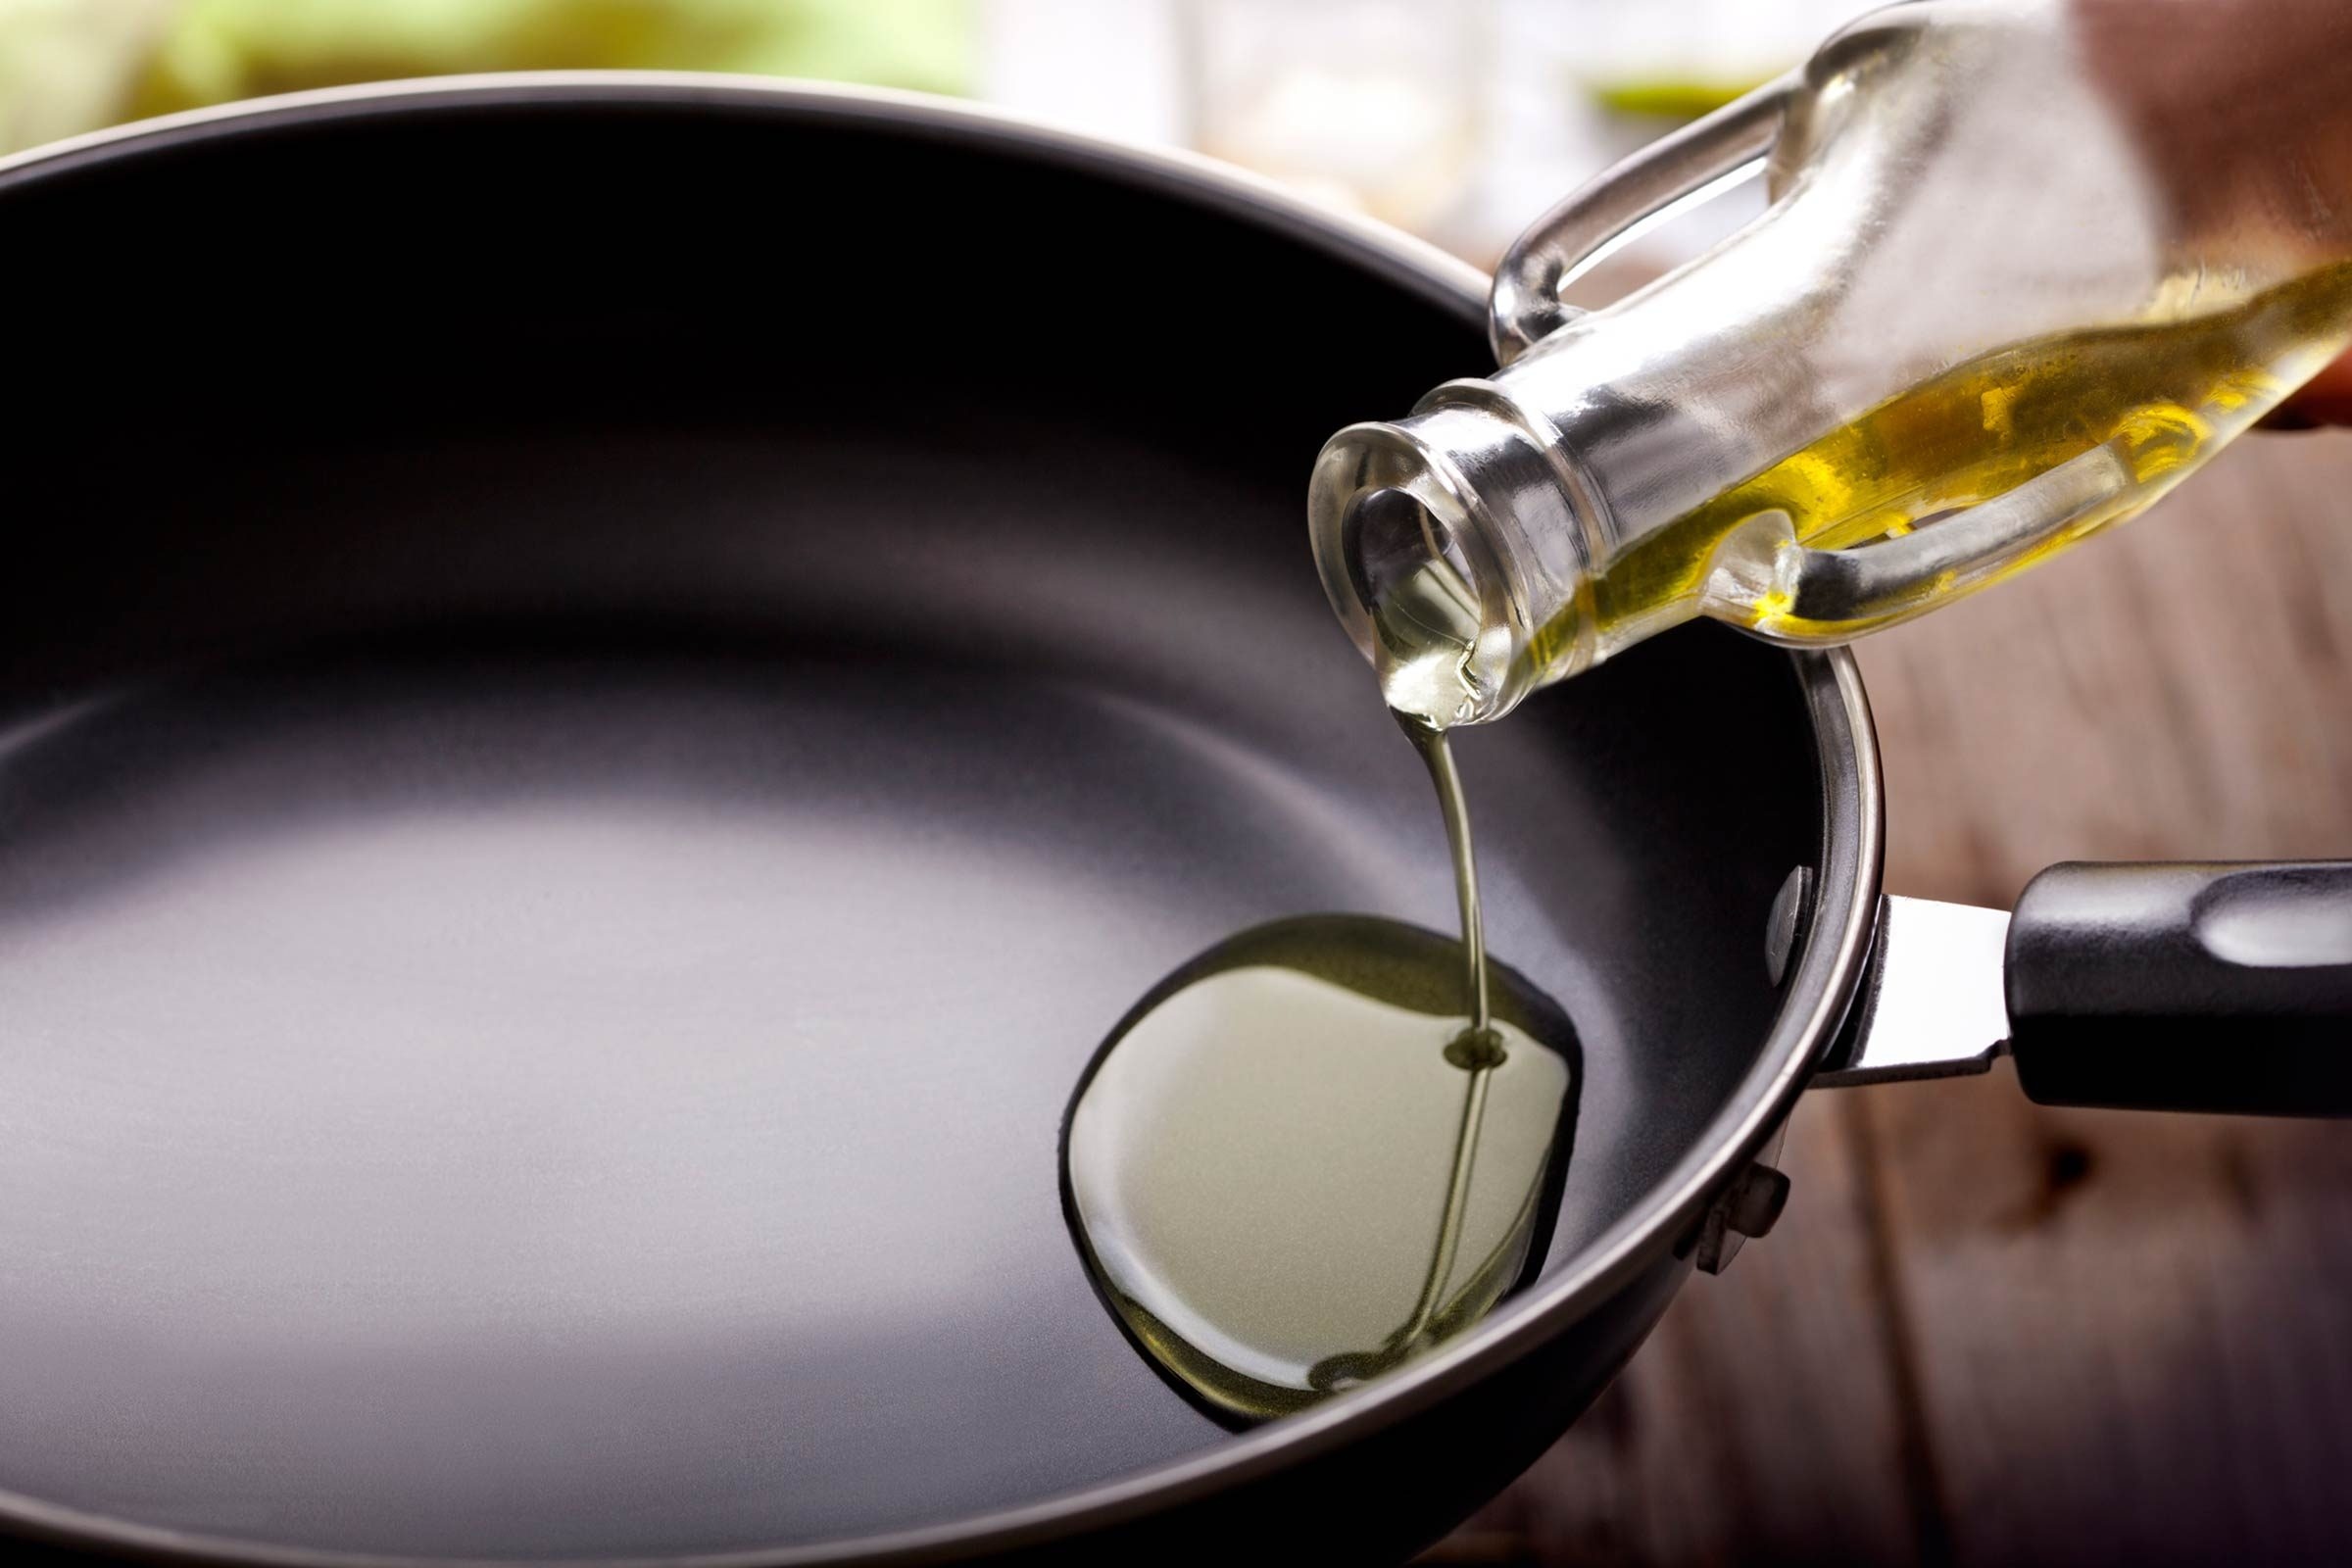 foods that lower your libido   oil being poured into a cooking pan